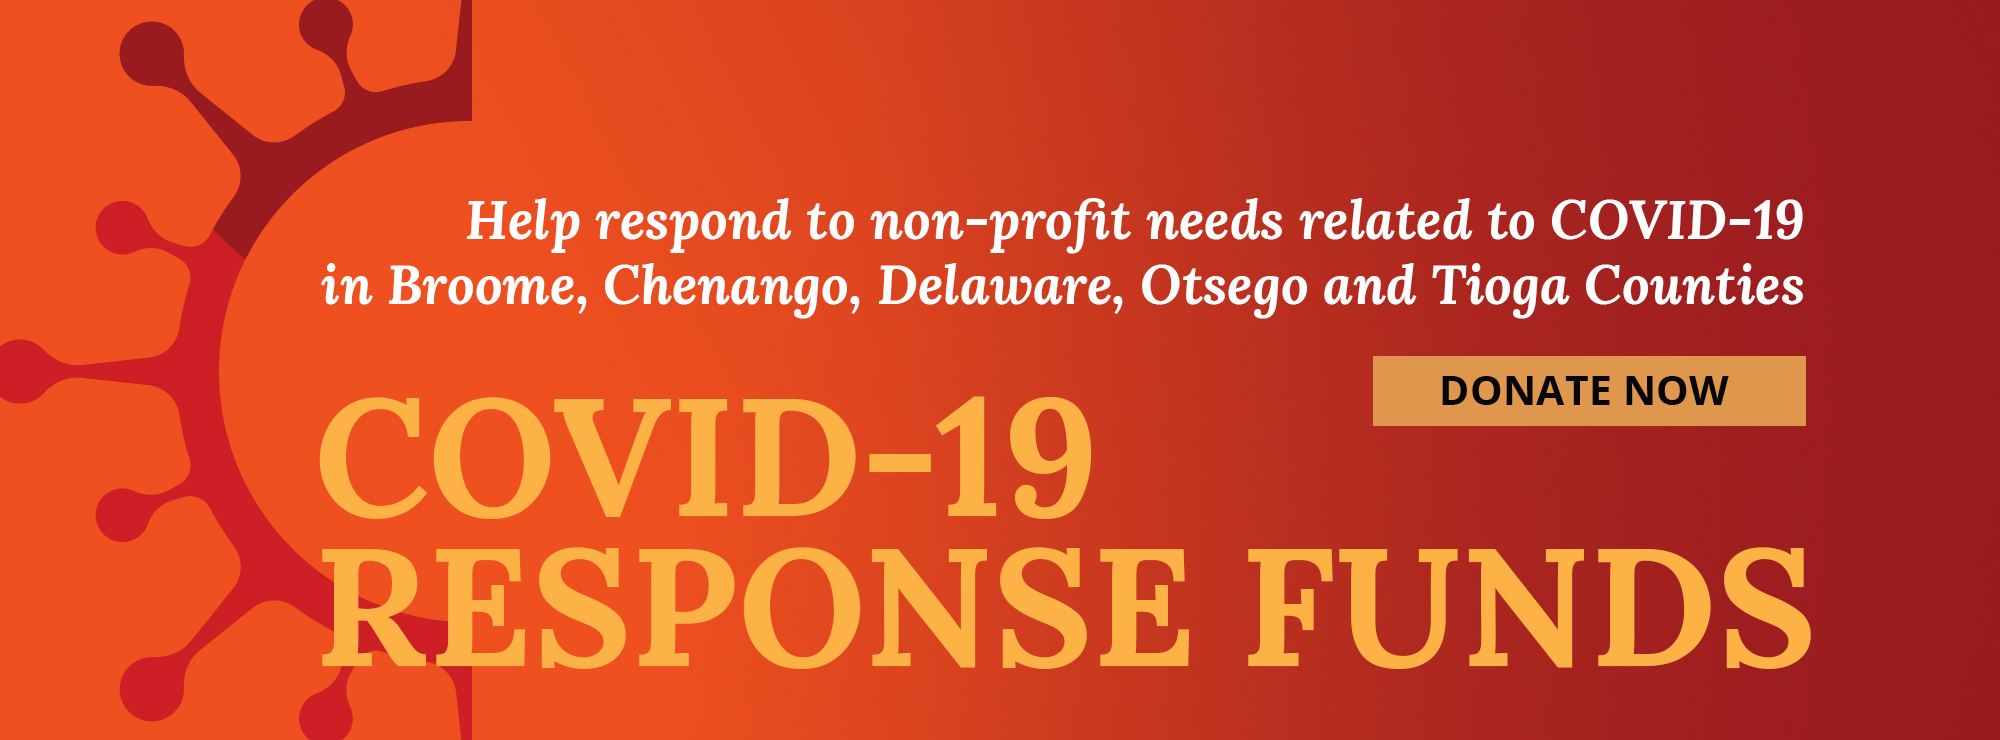 Graphic introducing Community Foundation initiatives for COVID-19 Response Funds